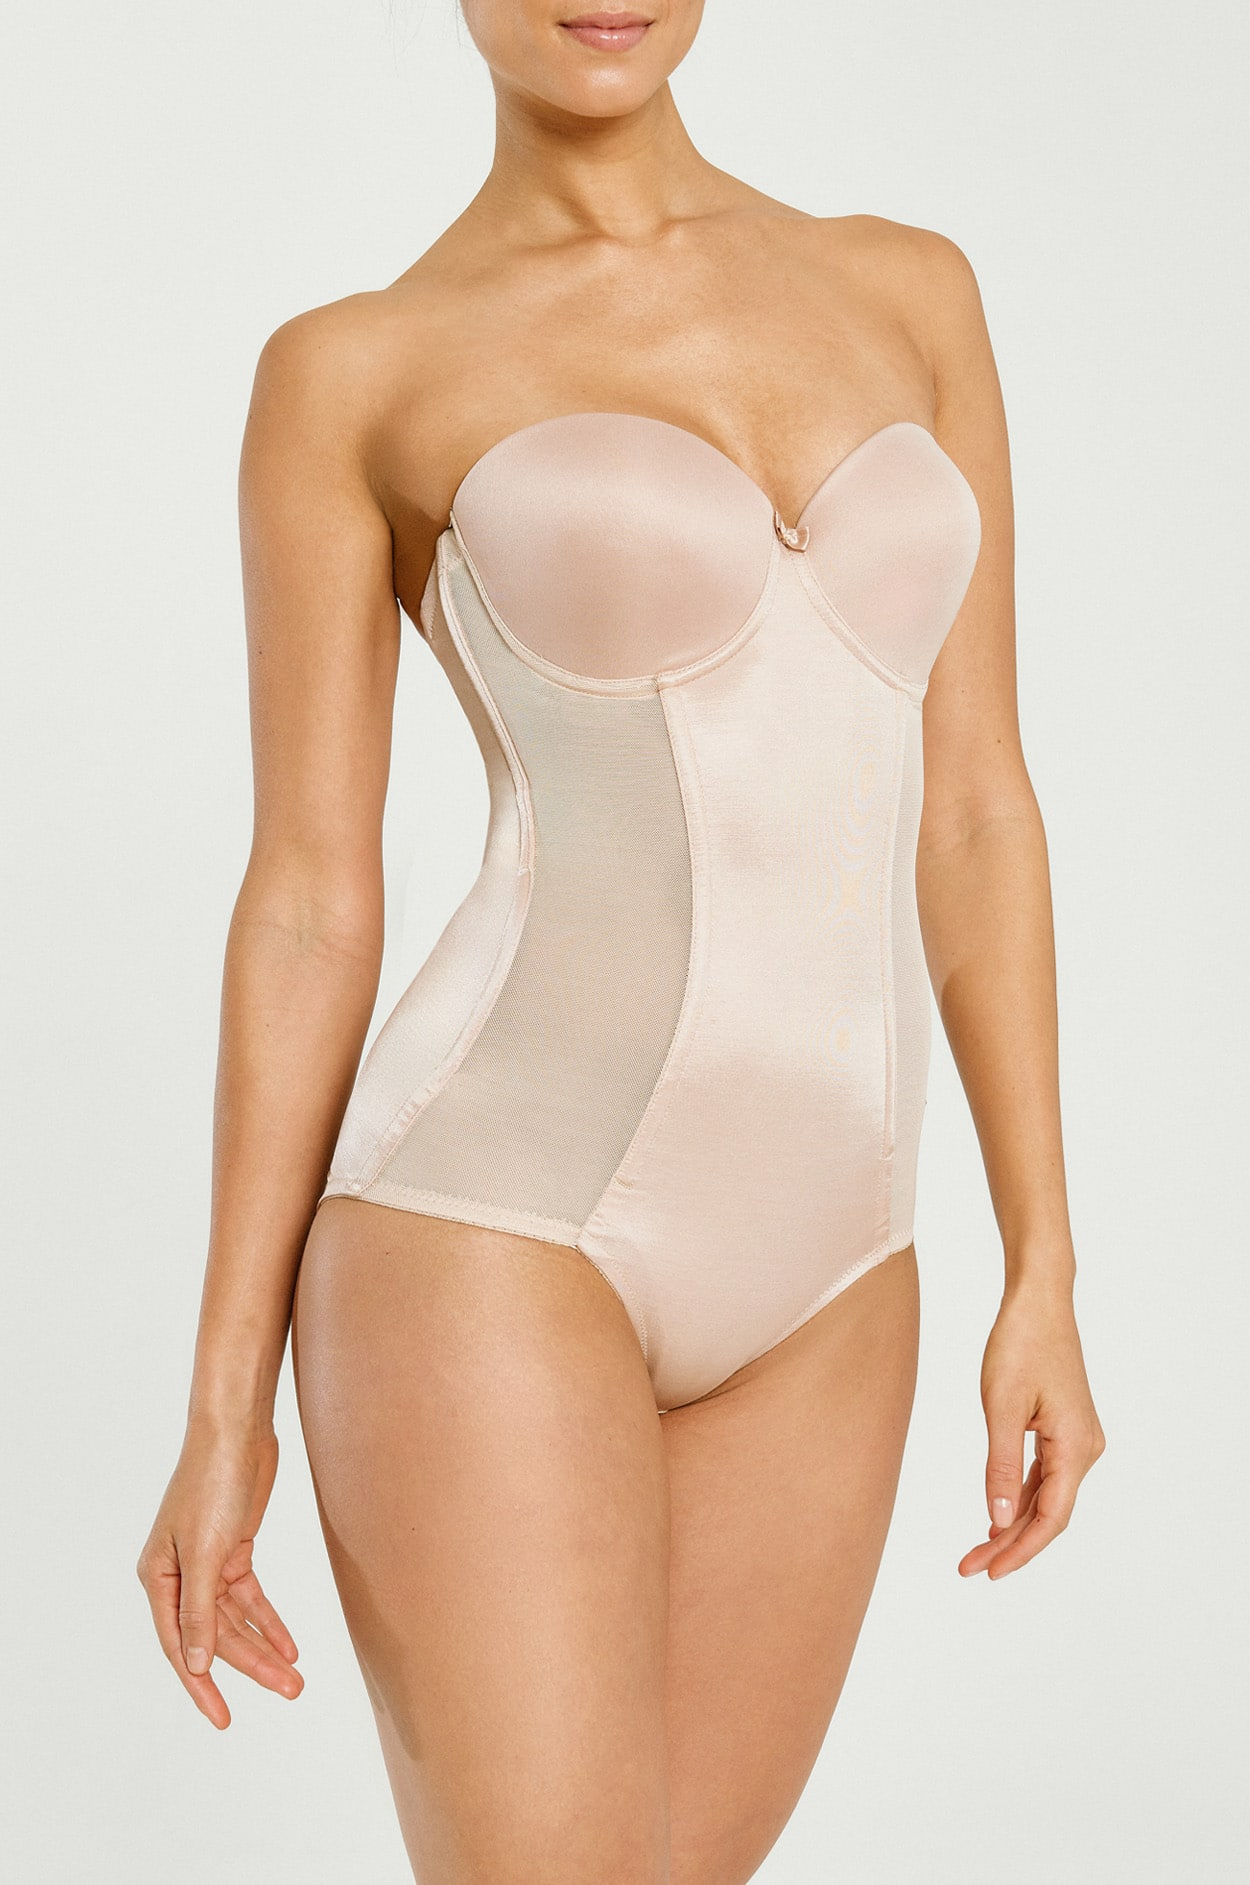 470302c5ca4 Home   Shop by Style   Shapewear   Satin Panel Low Back Bodysuit